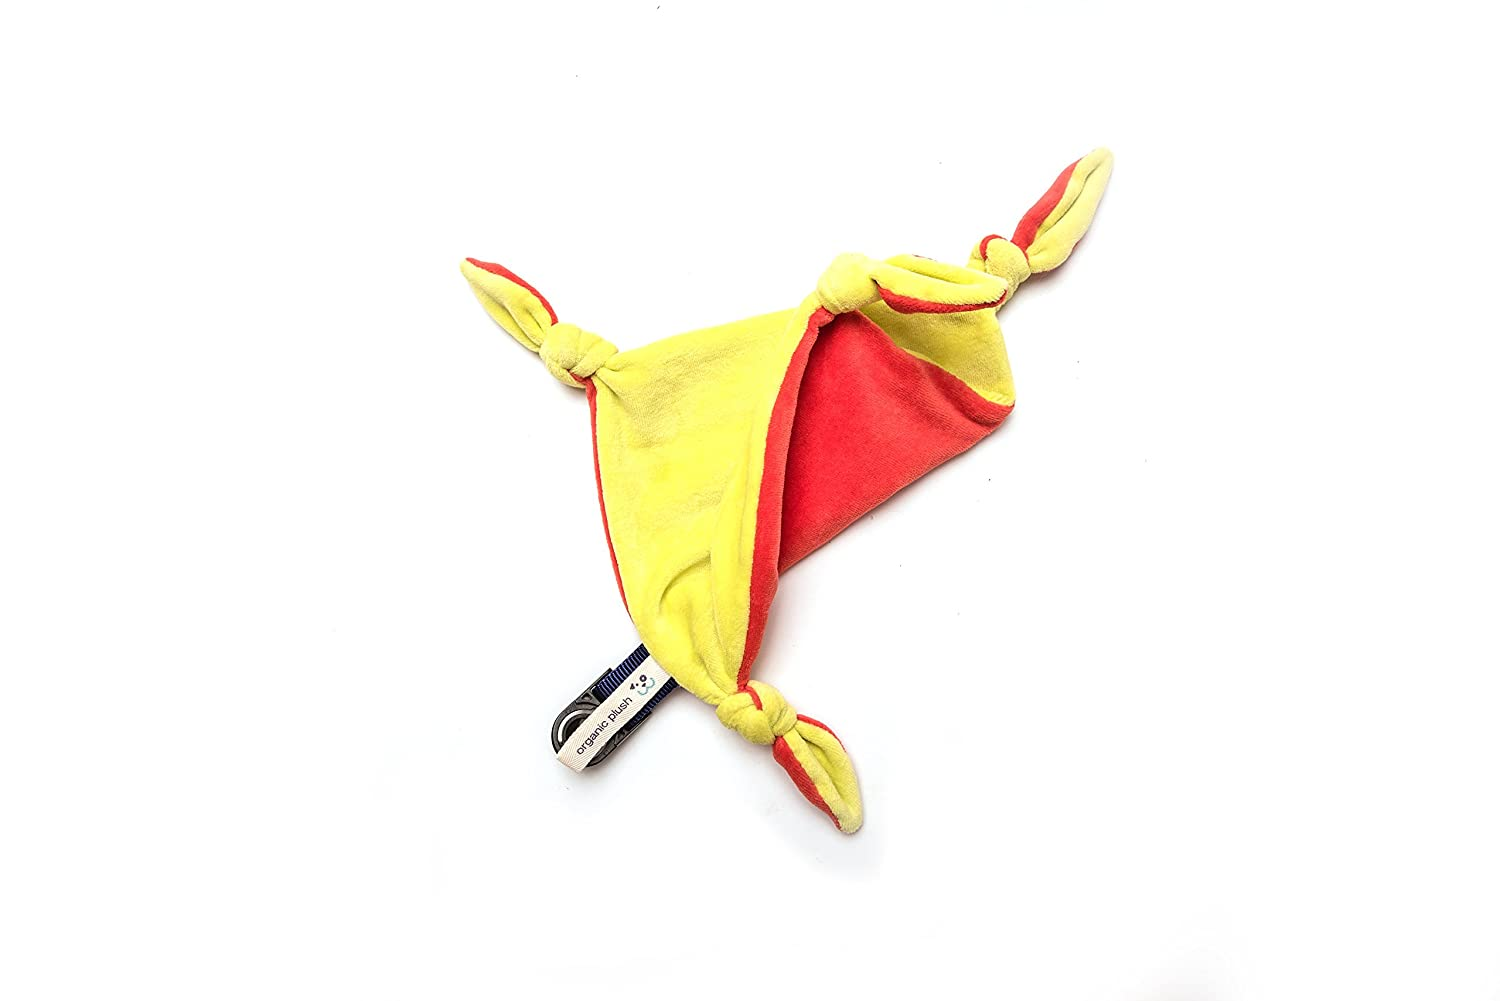 Noi for Dogs We Toys, Red /Yellow Binkie